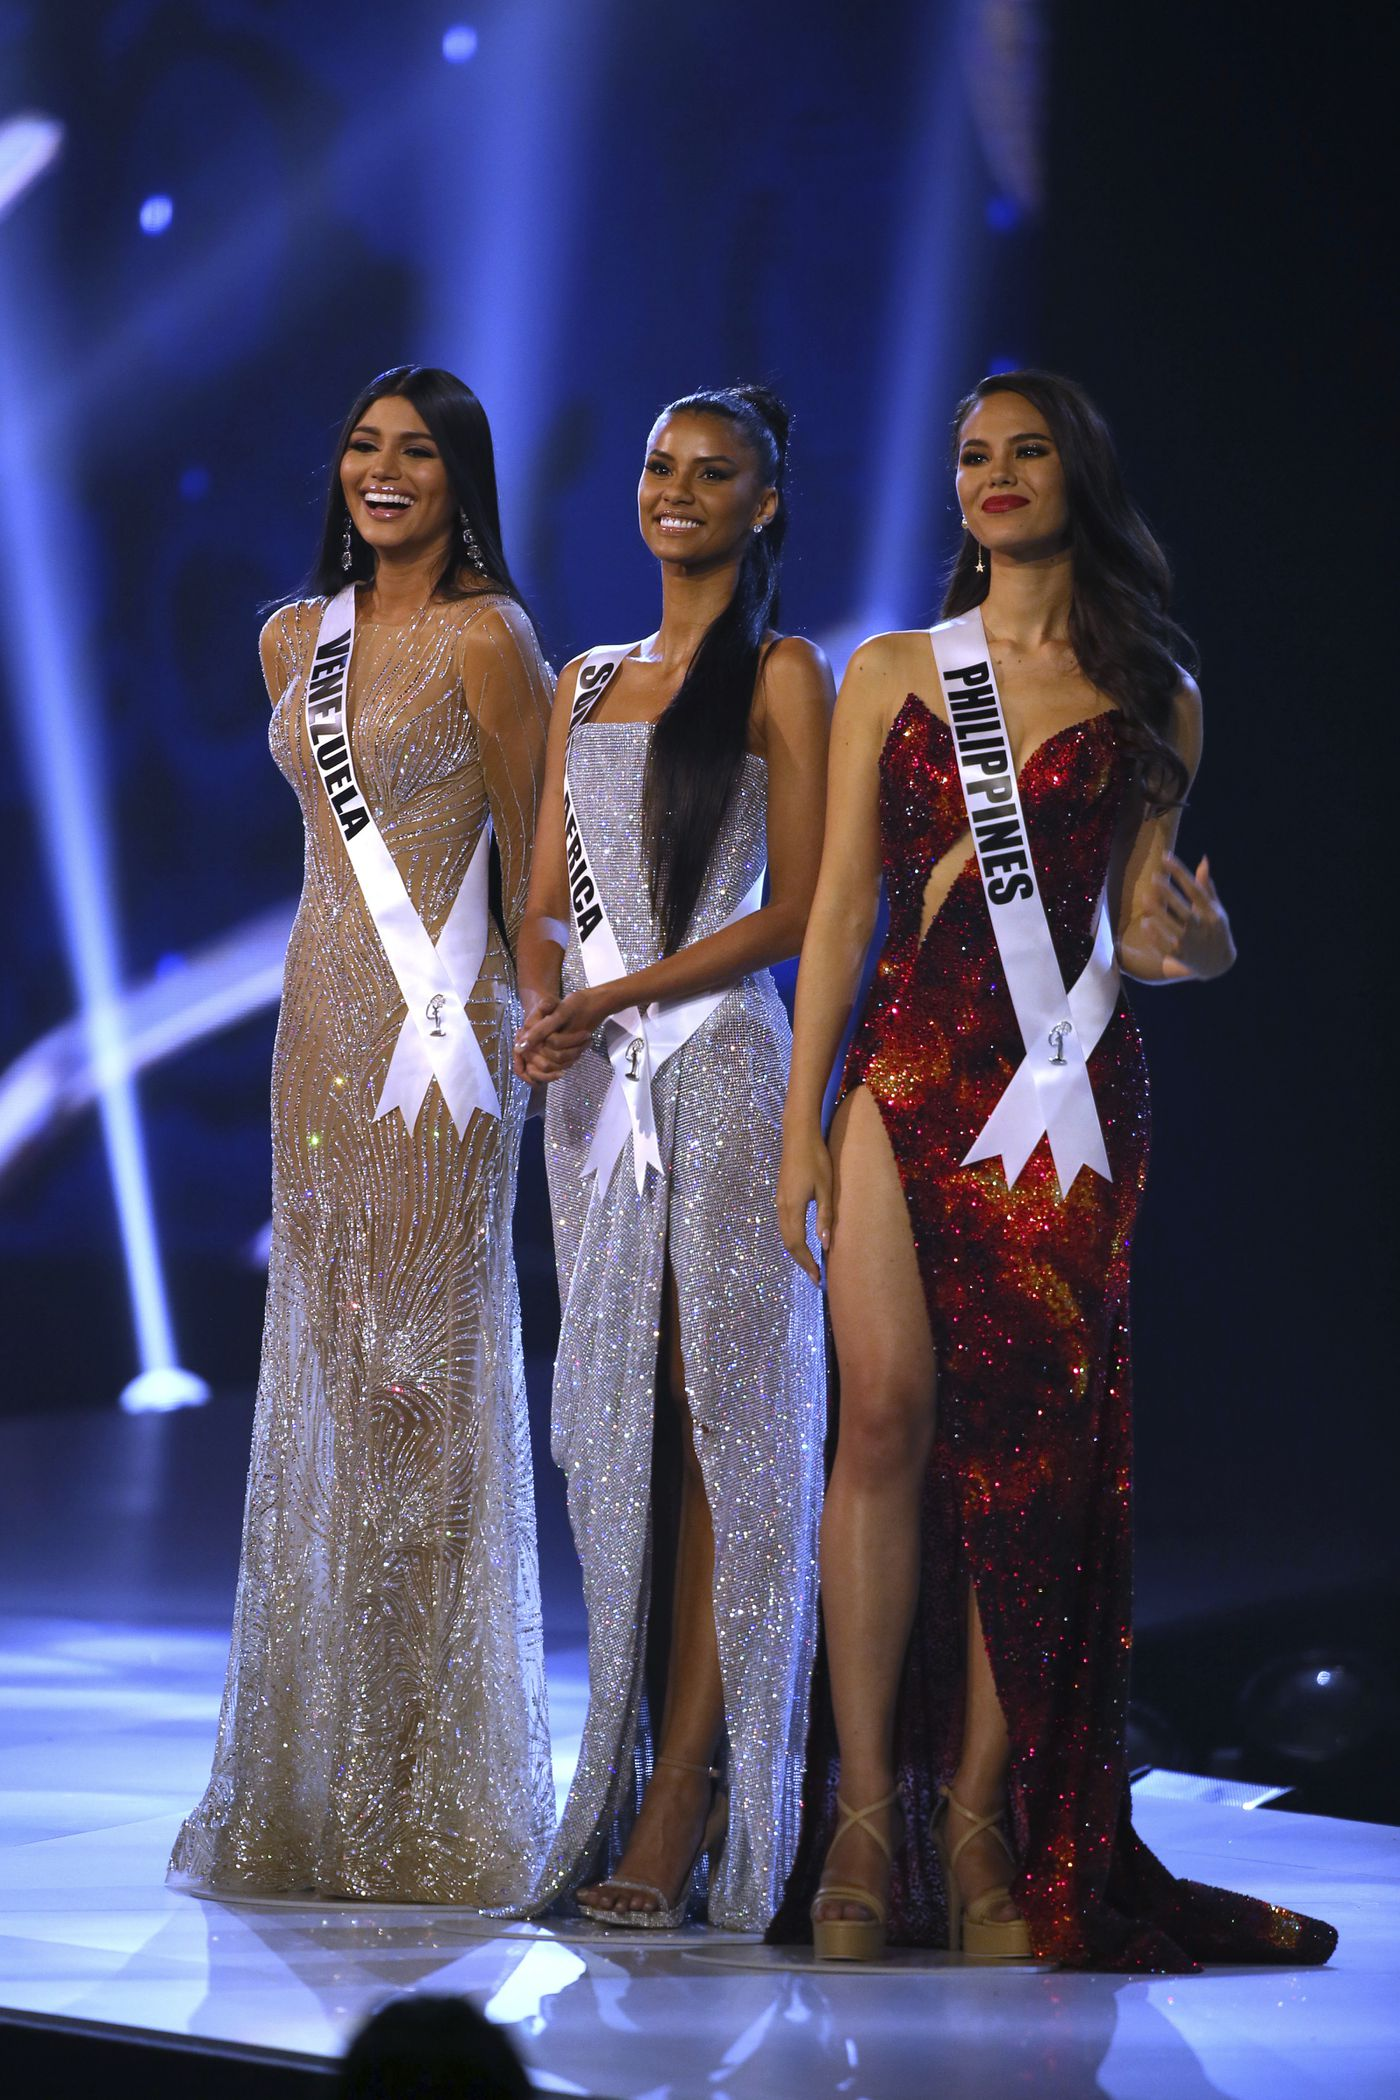 Philippines Catriona Gray Named Miss Universe 2018